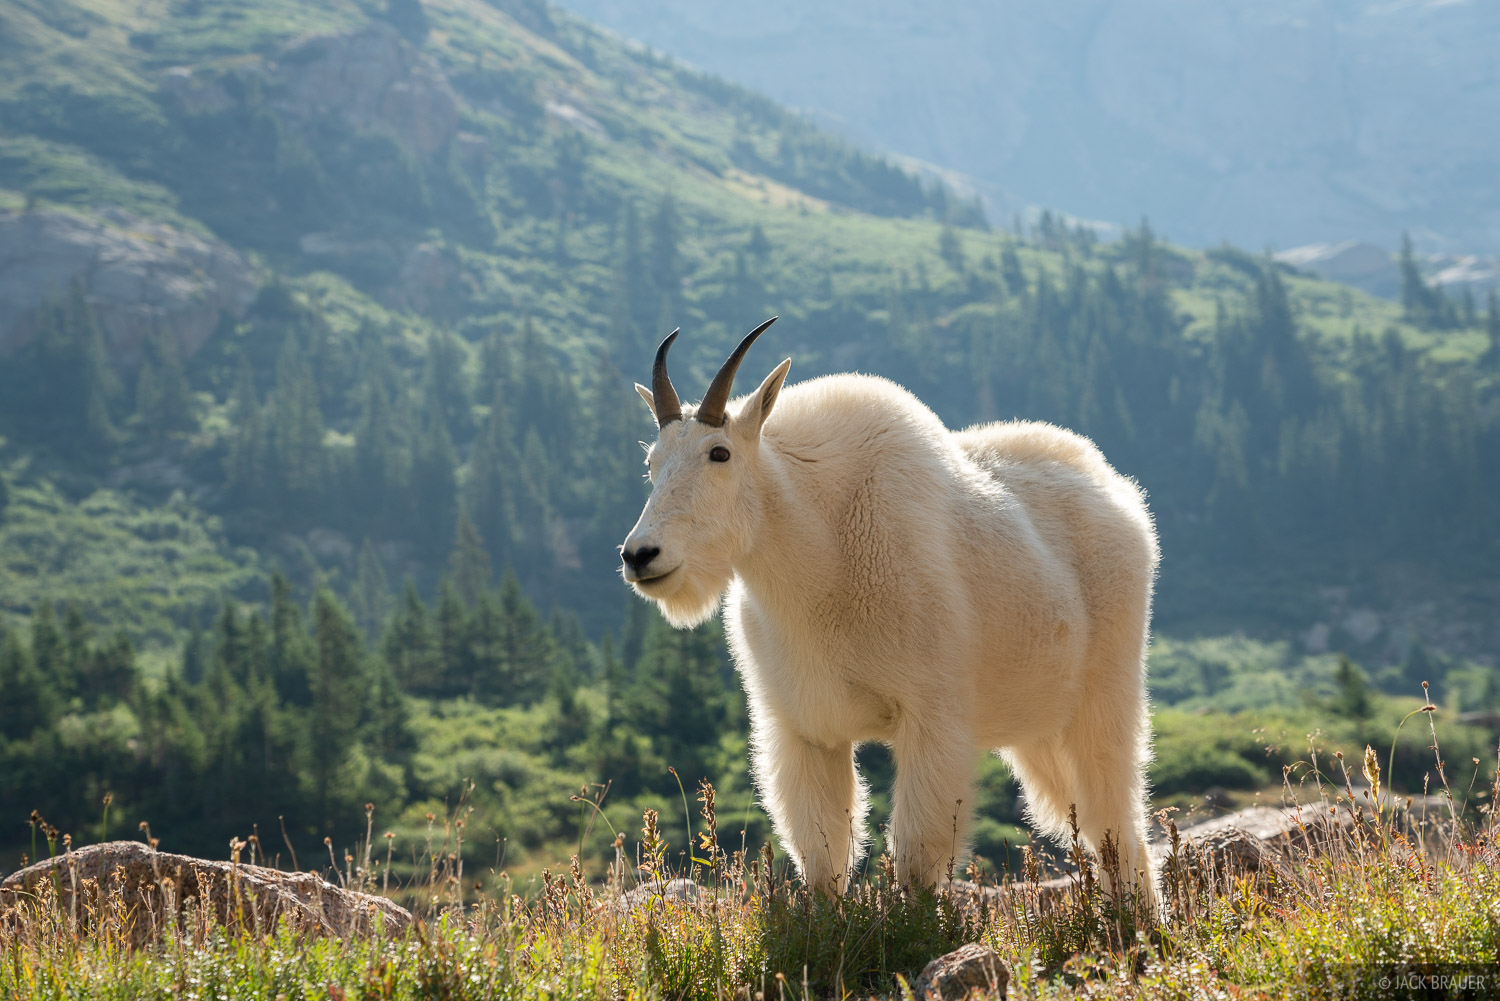 Colorado, Needle Mountains, San Juan Mountains, Weminuche Wilderness, mountain goat, photo